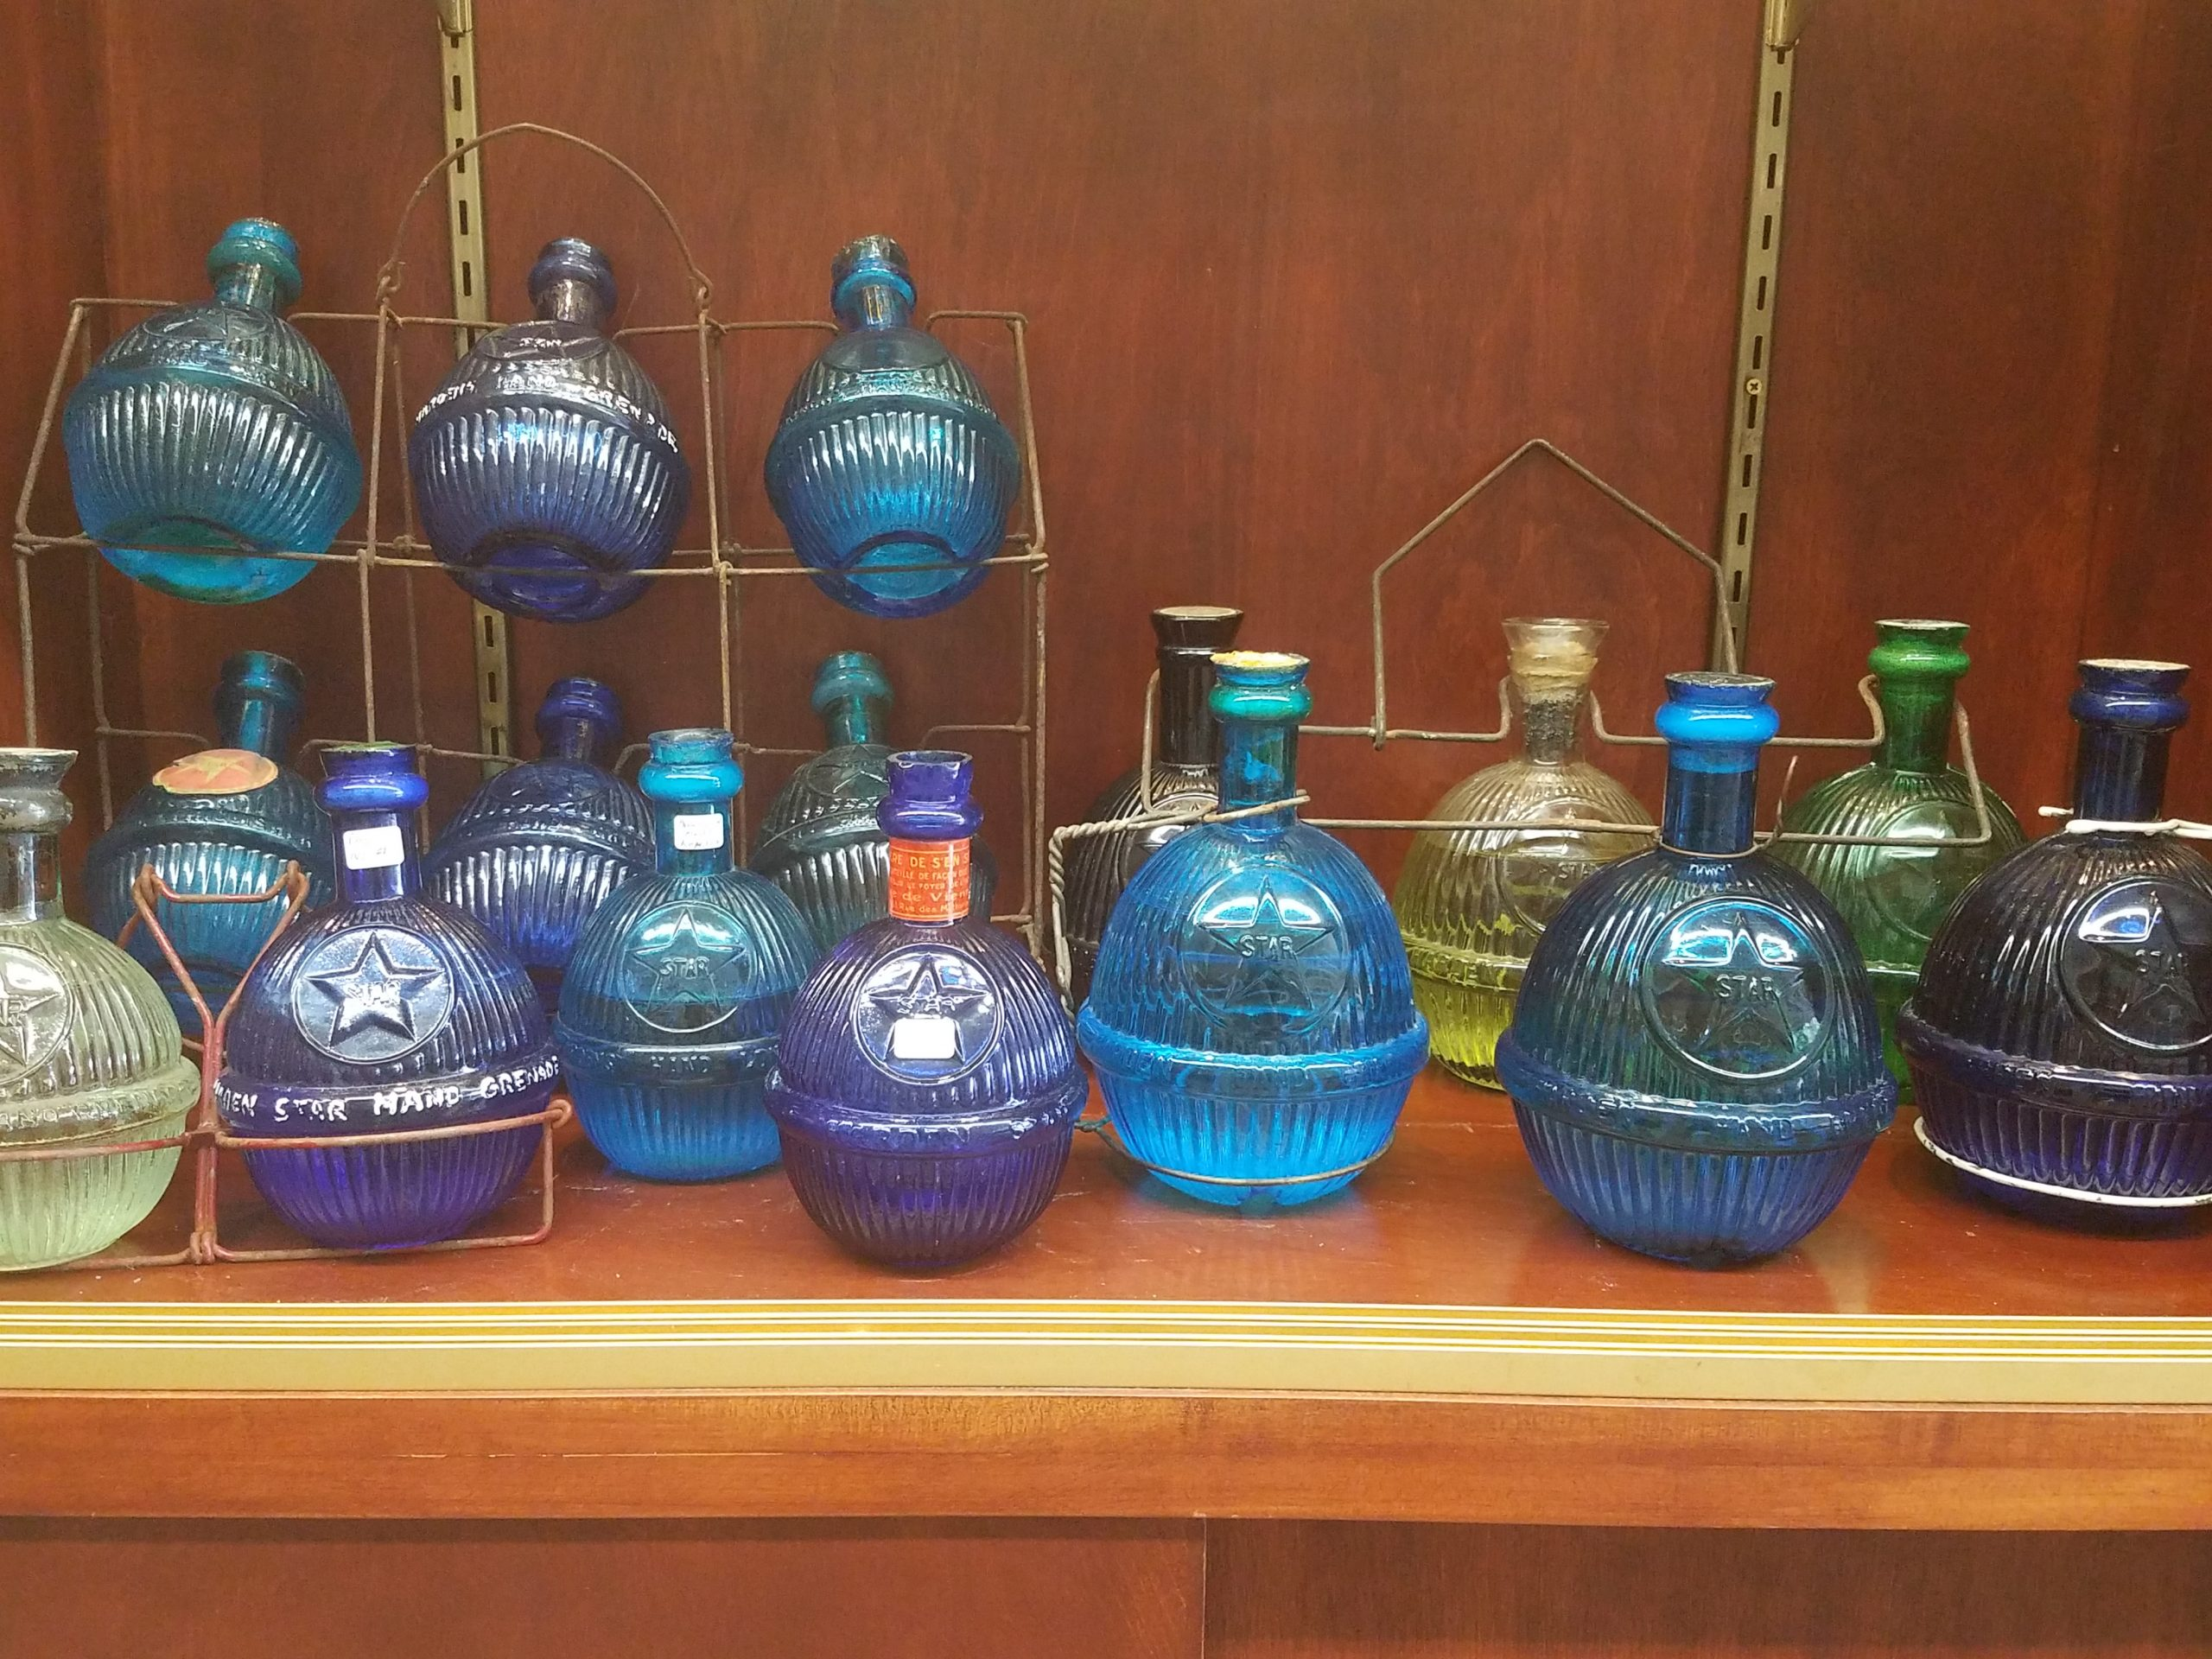 Fire Extinguisher Exhibit at The National Bottle Museum